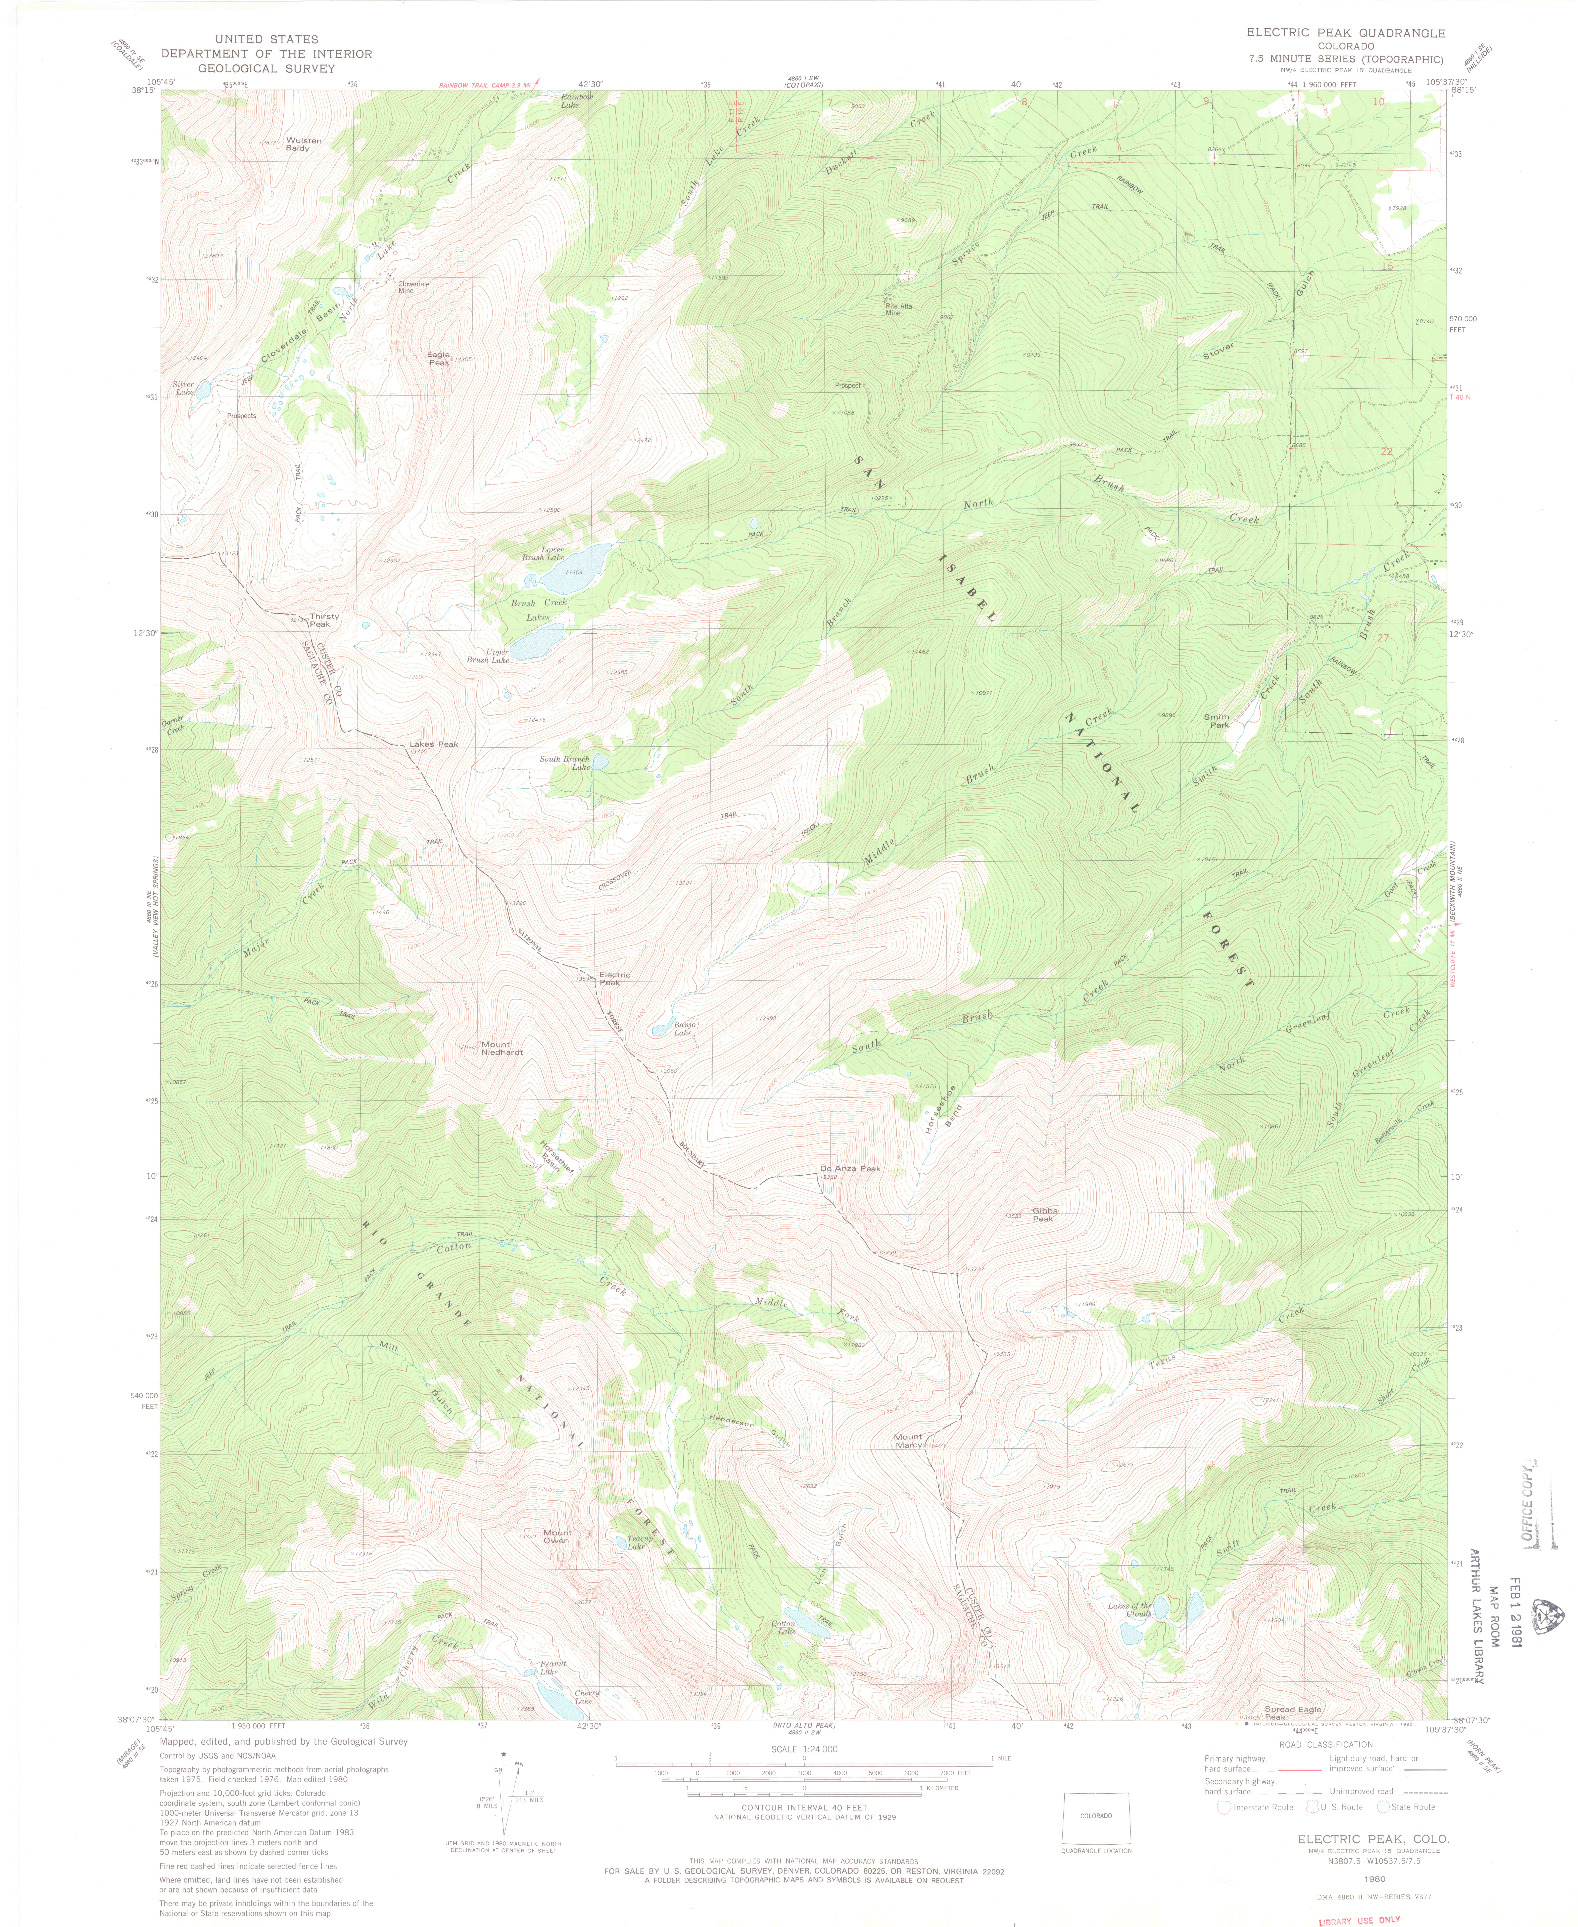 USGS 1:24000-SCALE QUADRANGLE FOR ELECTRIC PEAK, CO 1980